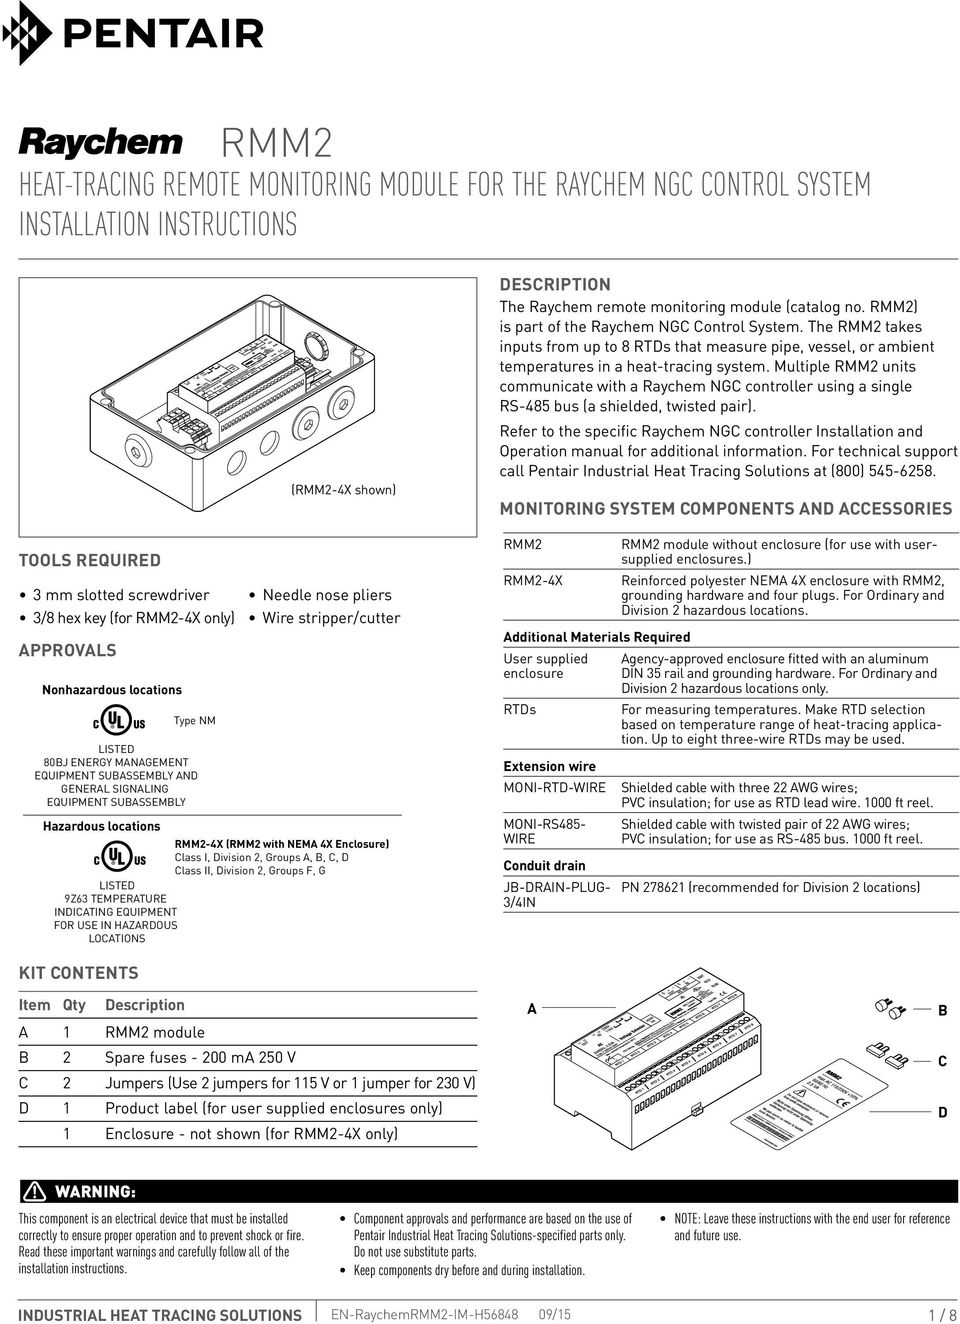 Class I, Division 2, Groups A, B, C, D Class II, Division 2, Groups F, G LISTED 9Z3 TEMPERATURE INDICATING EQUIPMENT FOR USE IN HAZARDOUS LOCATIONS Description The remote monitoring module (catalog